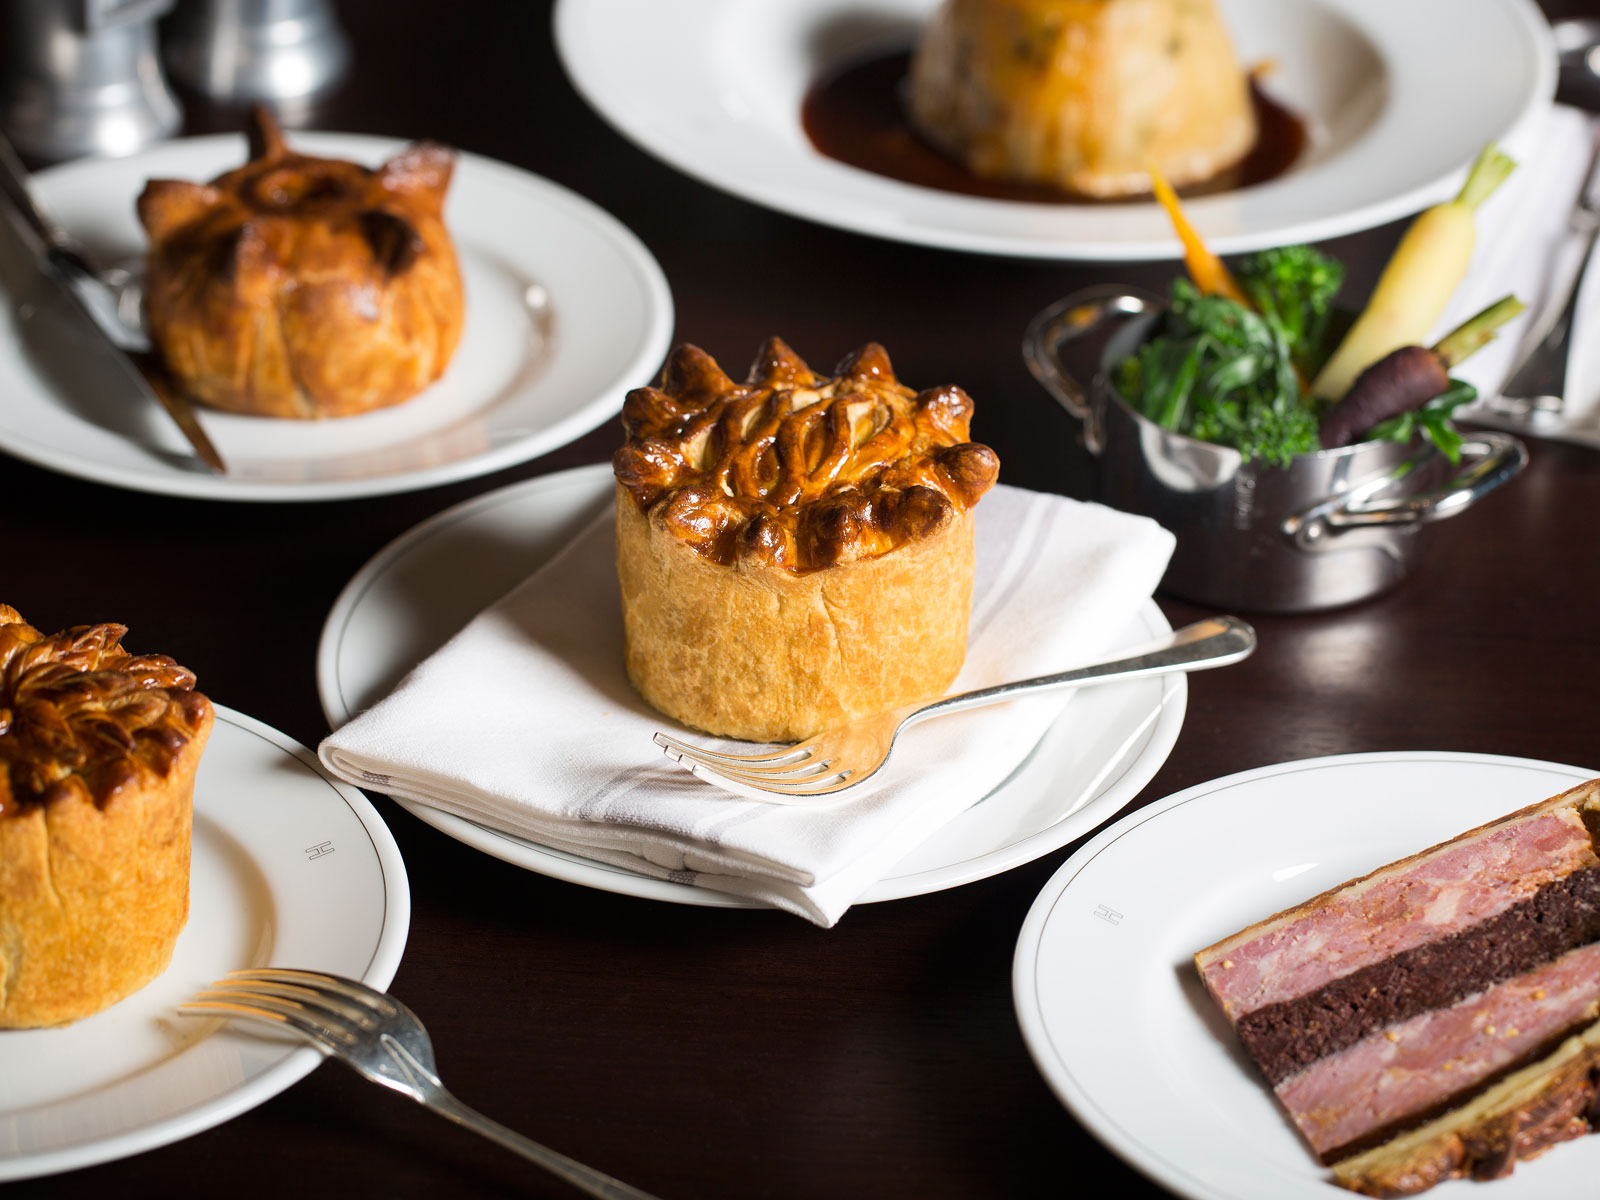 One of London's Best Chefs Is Selling Pie from a Takeout Window, and We'll Take One of Everything